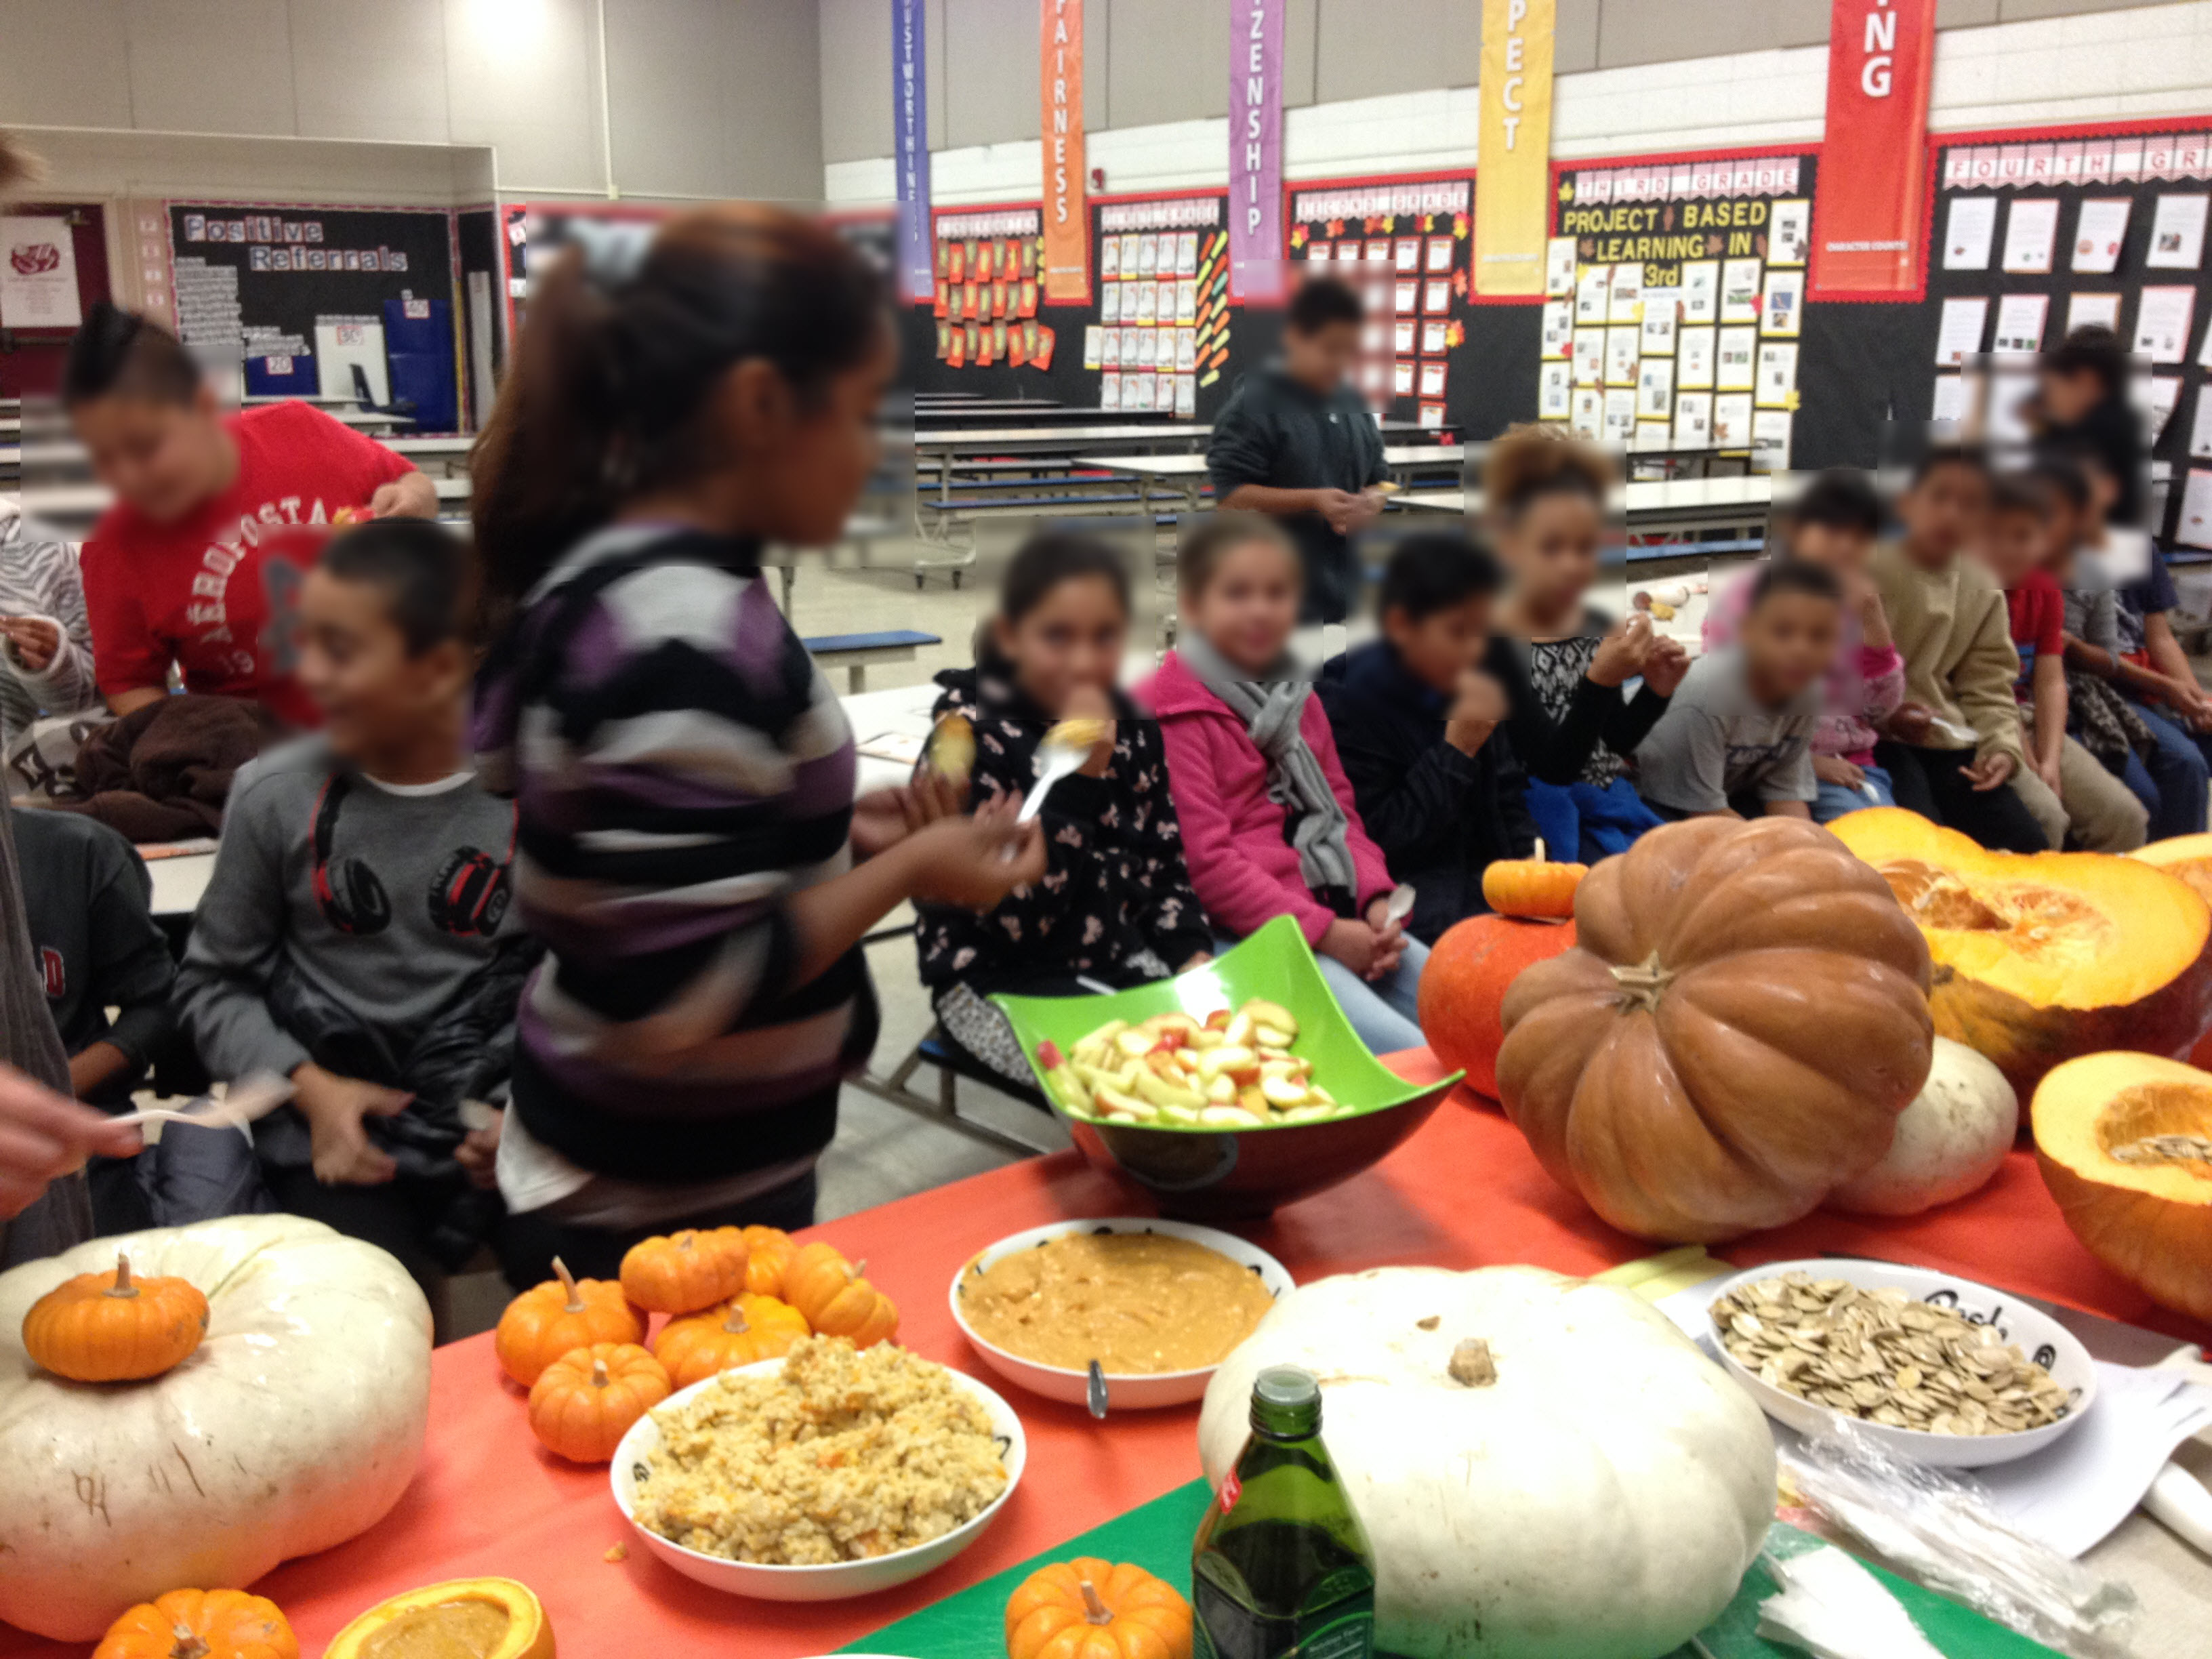 It's a Pumpkin-palooza at Frank West Elementary School